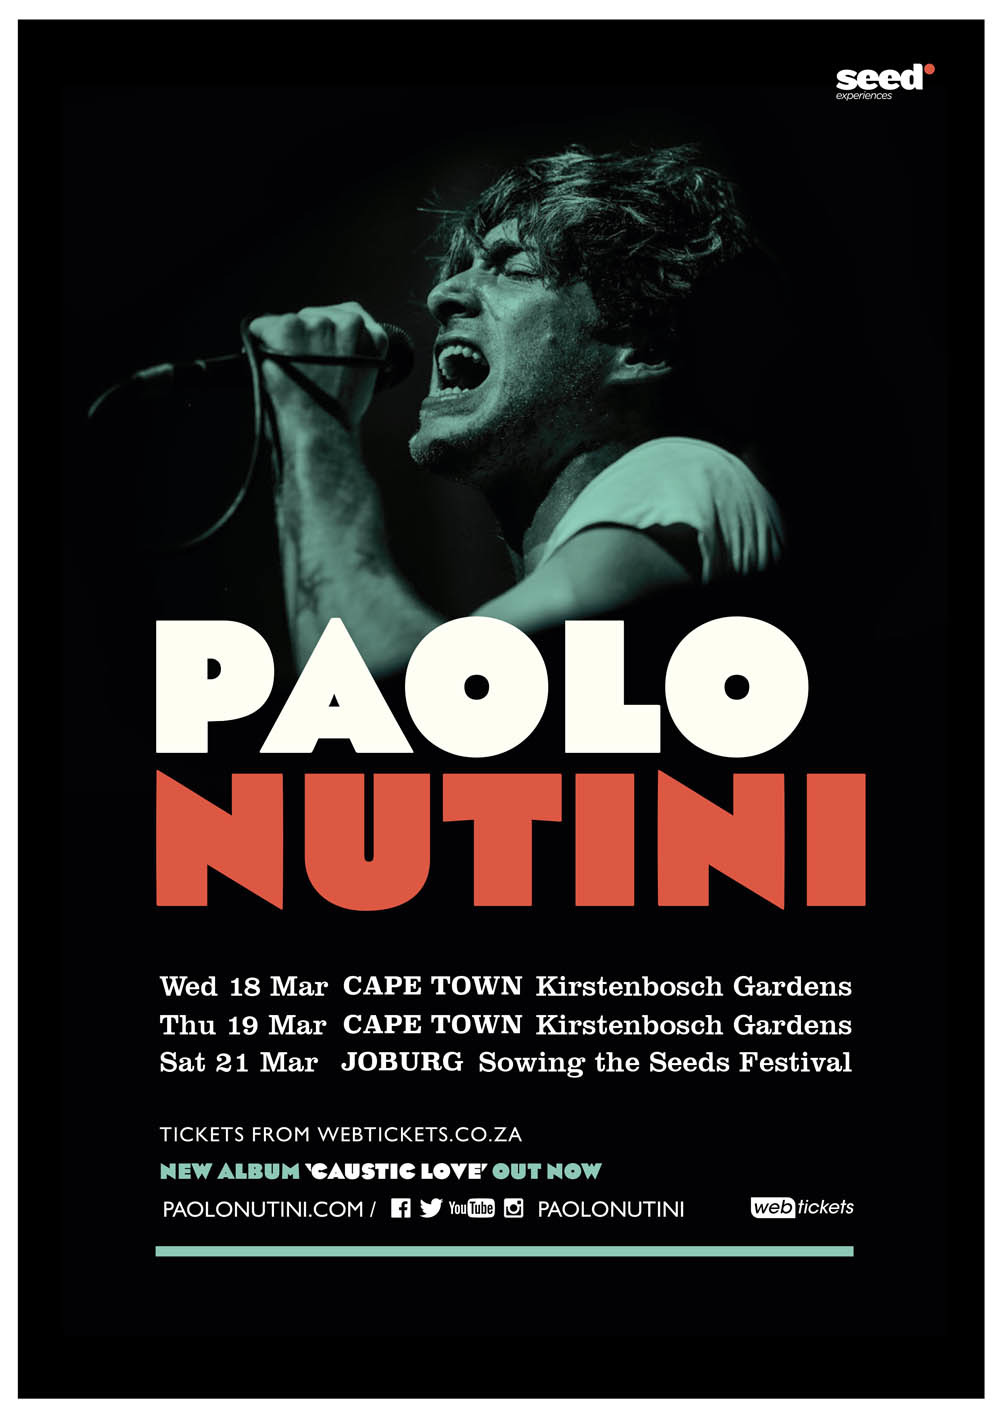 PAOLO NUTINI TO HEADLINE SOWING THE SEEDS MUSIC FESTIVAL